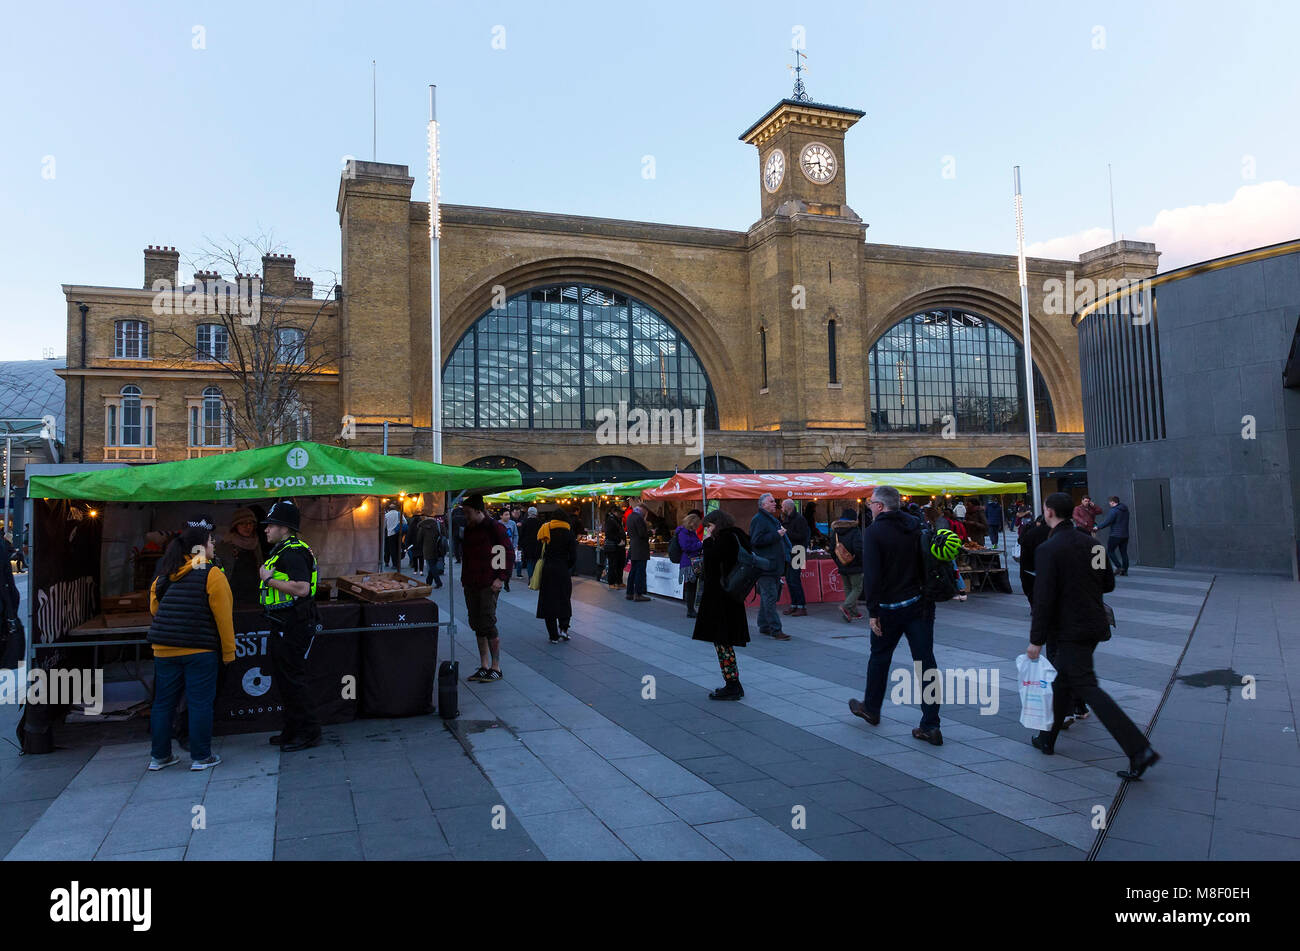 LONDON, UK - MARCH 7, 2018: General view of the Real Food Market outside King's Cross Railway station. The open - Stock Image